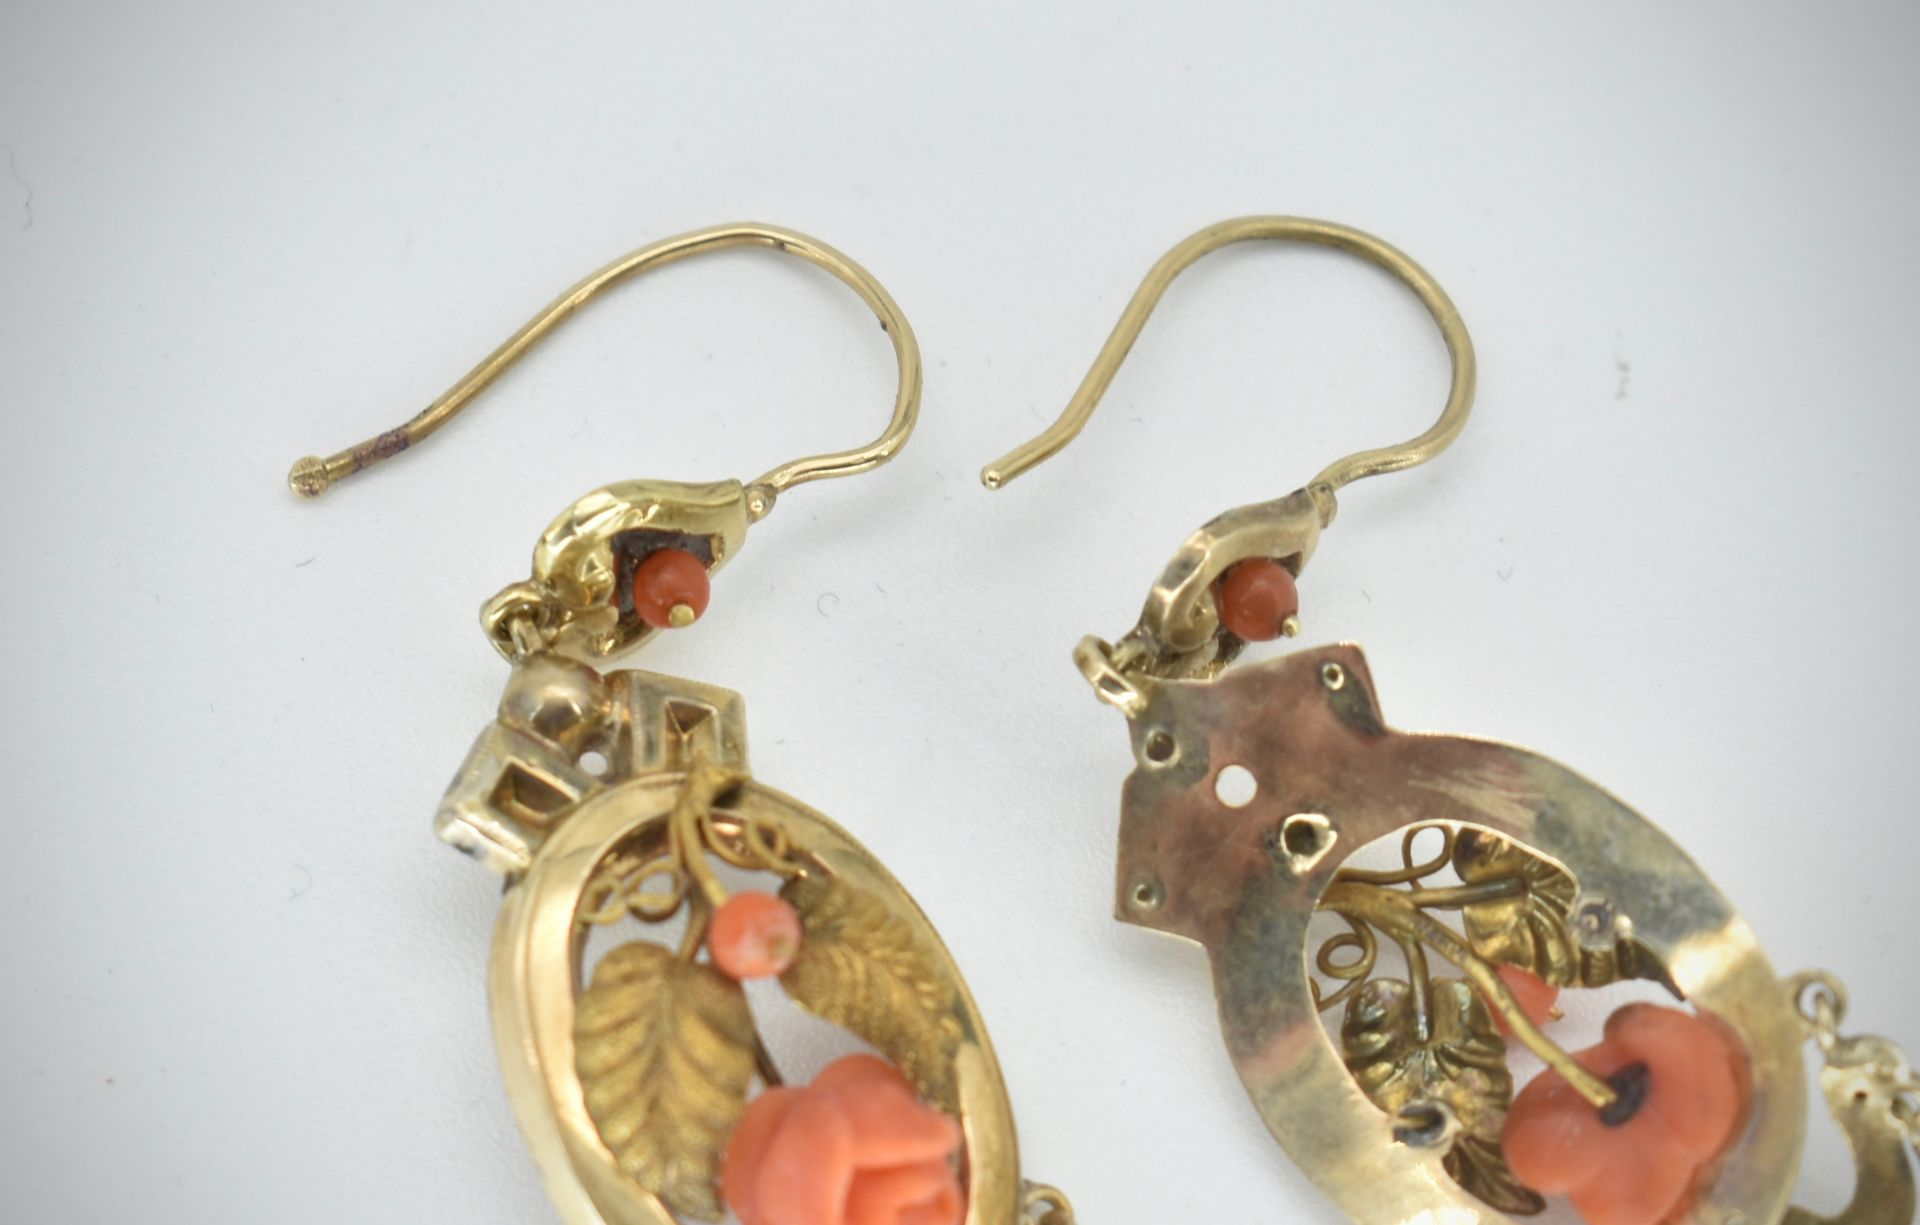 19th Century Victorian Gold & Coral Earring & Brooch Parure - Image 4 of 7